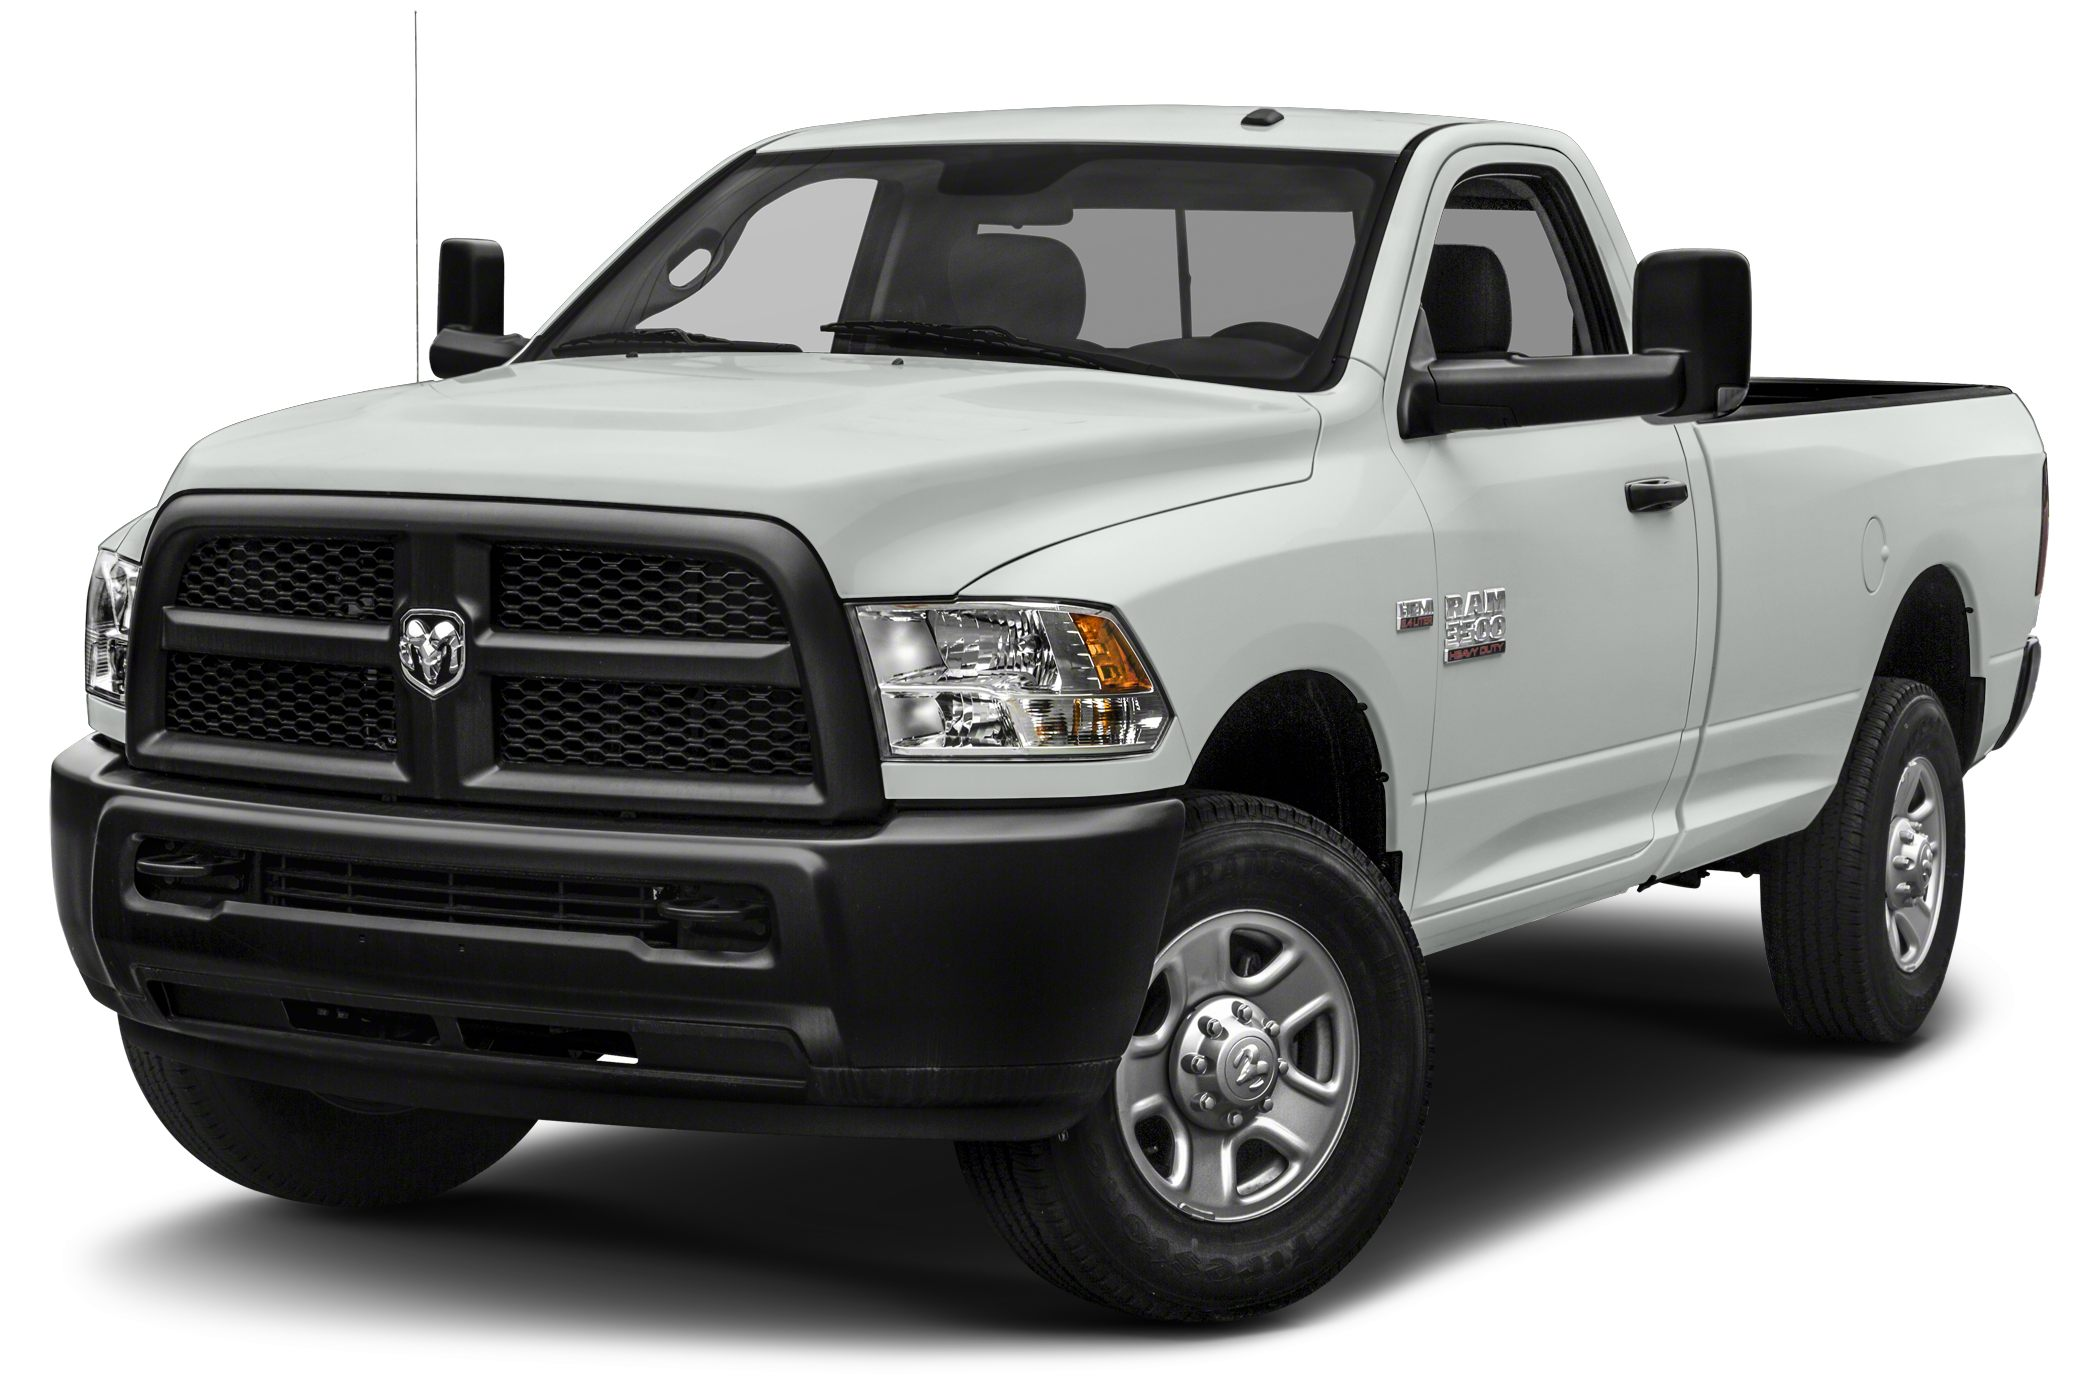 Ram Truck digs in with Laramie Longhorn-inspired Case ...